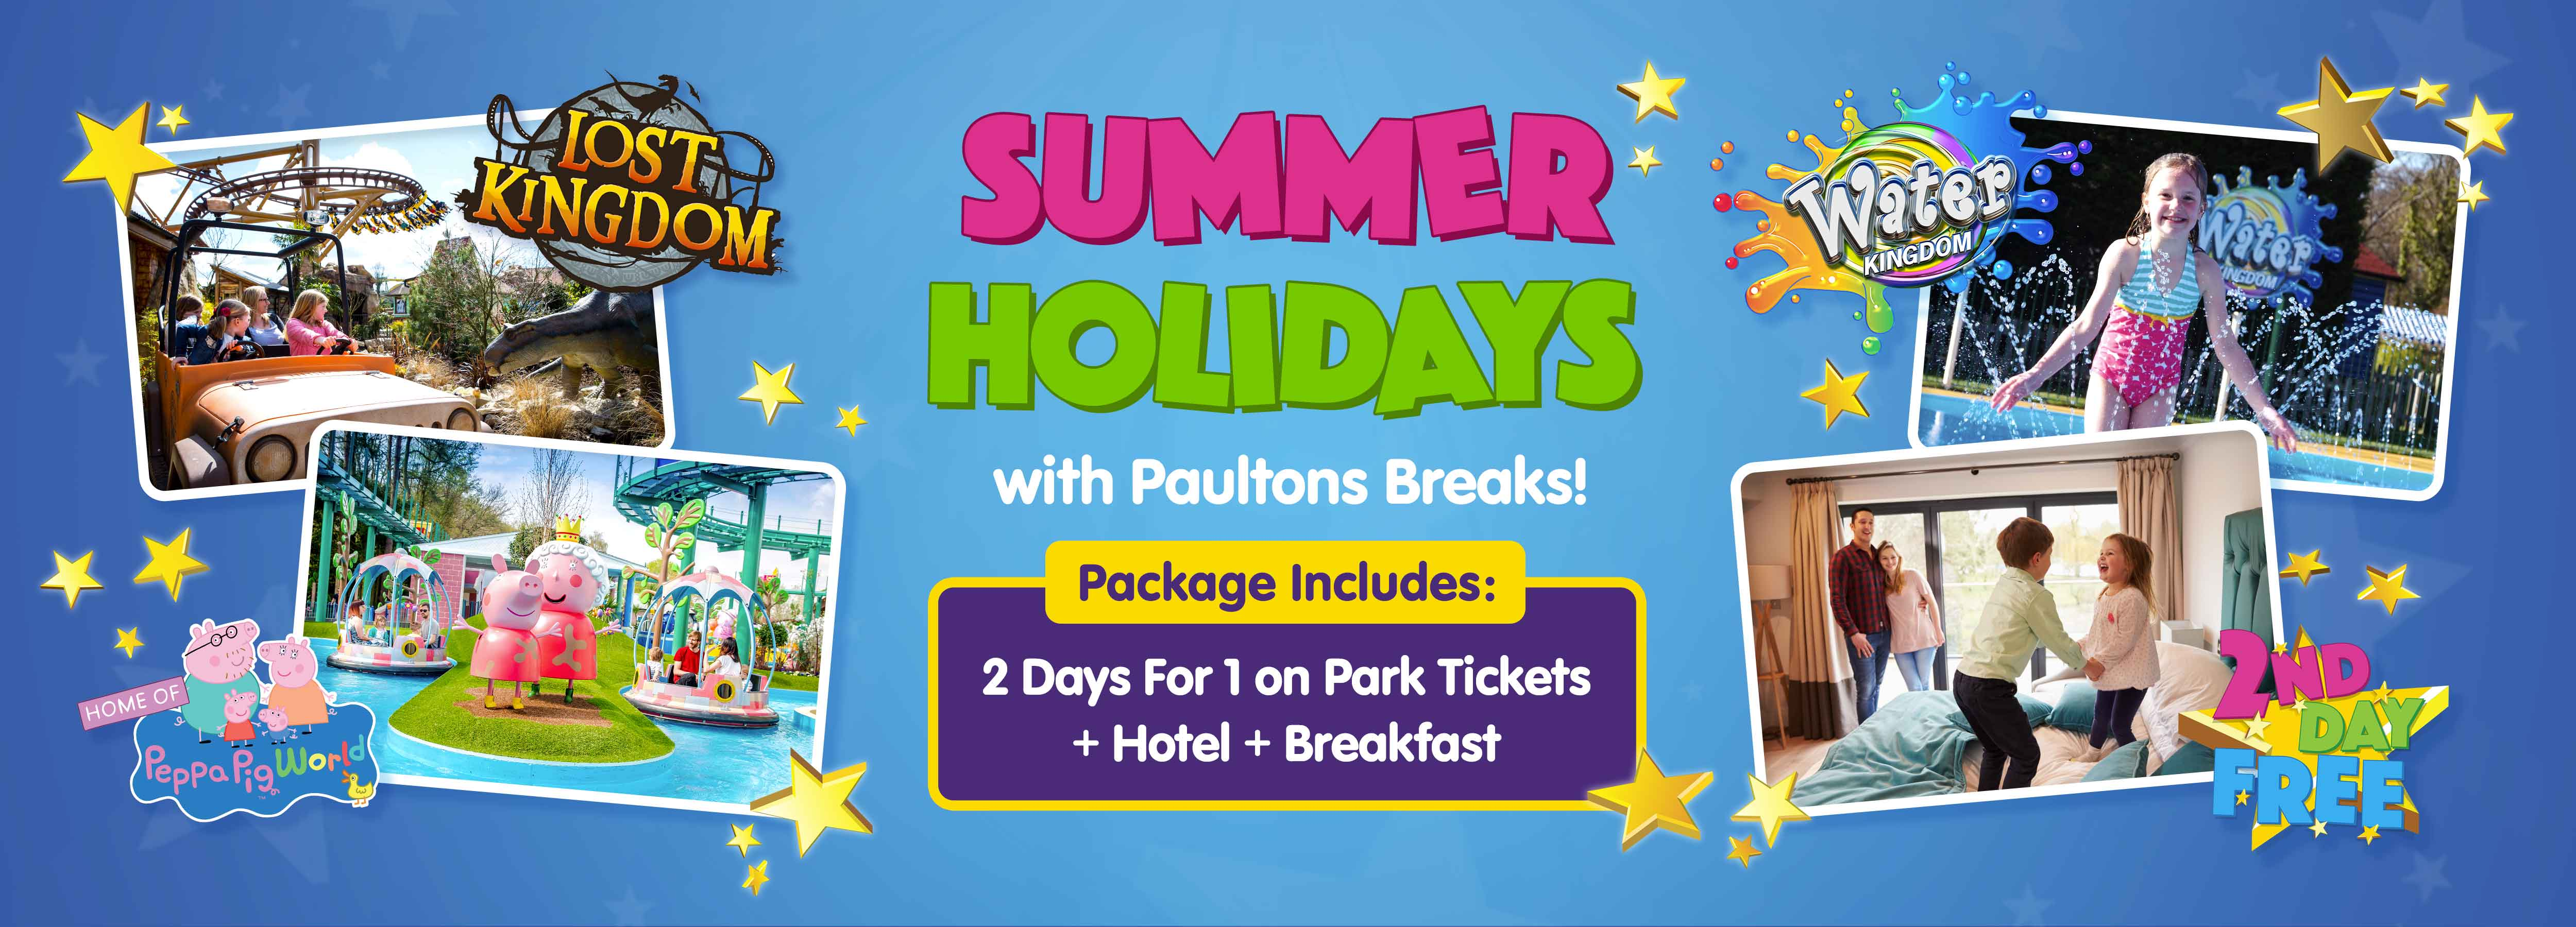 Summer holidays with Paultons Breaks